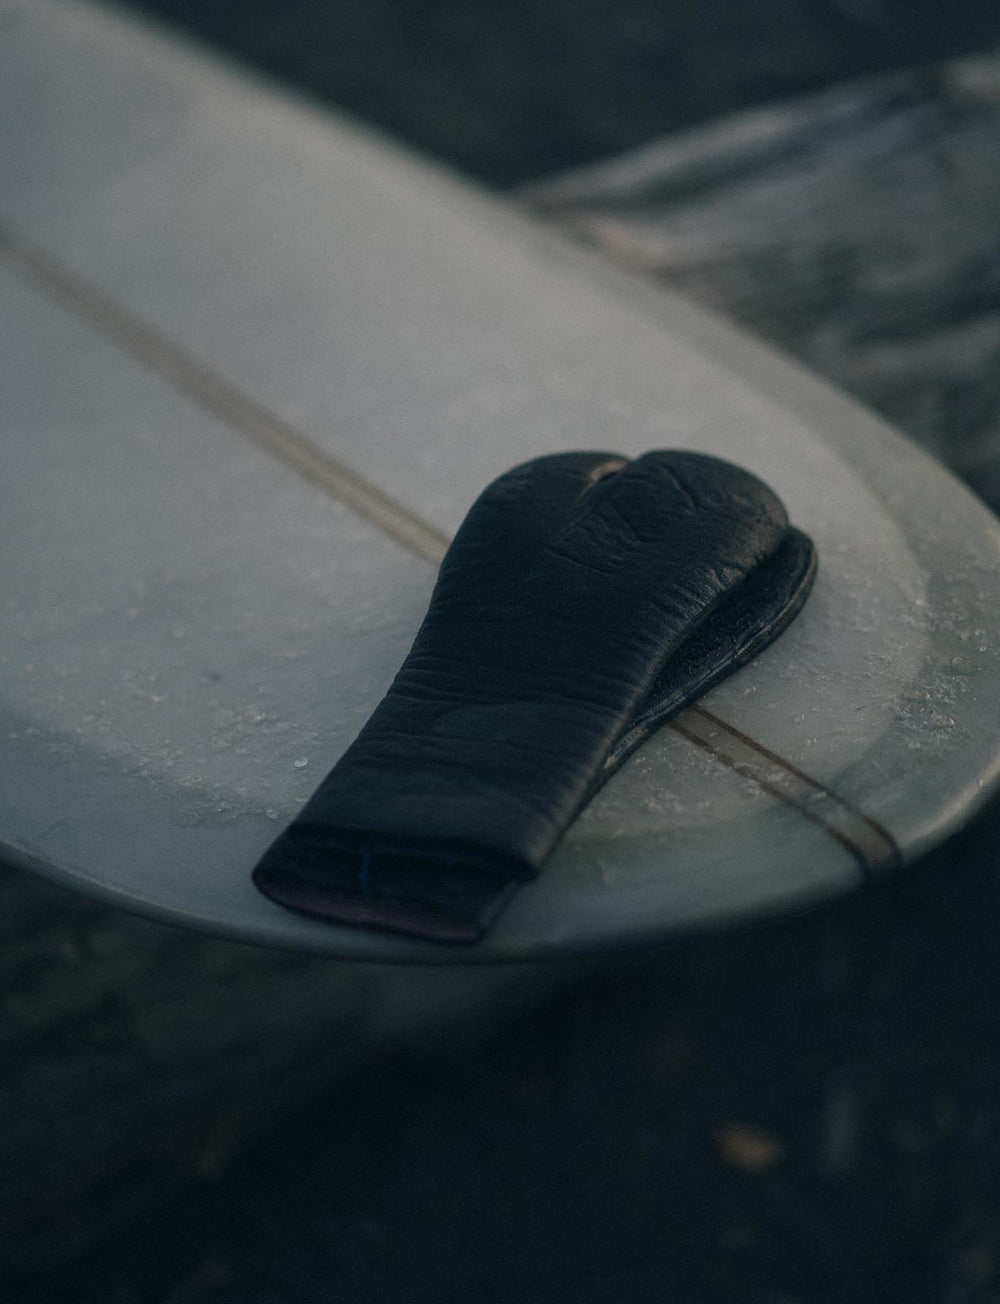 A pair of wet surf gloves sit ontop of a classic longboard surfboard